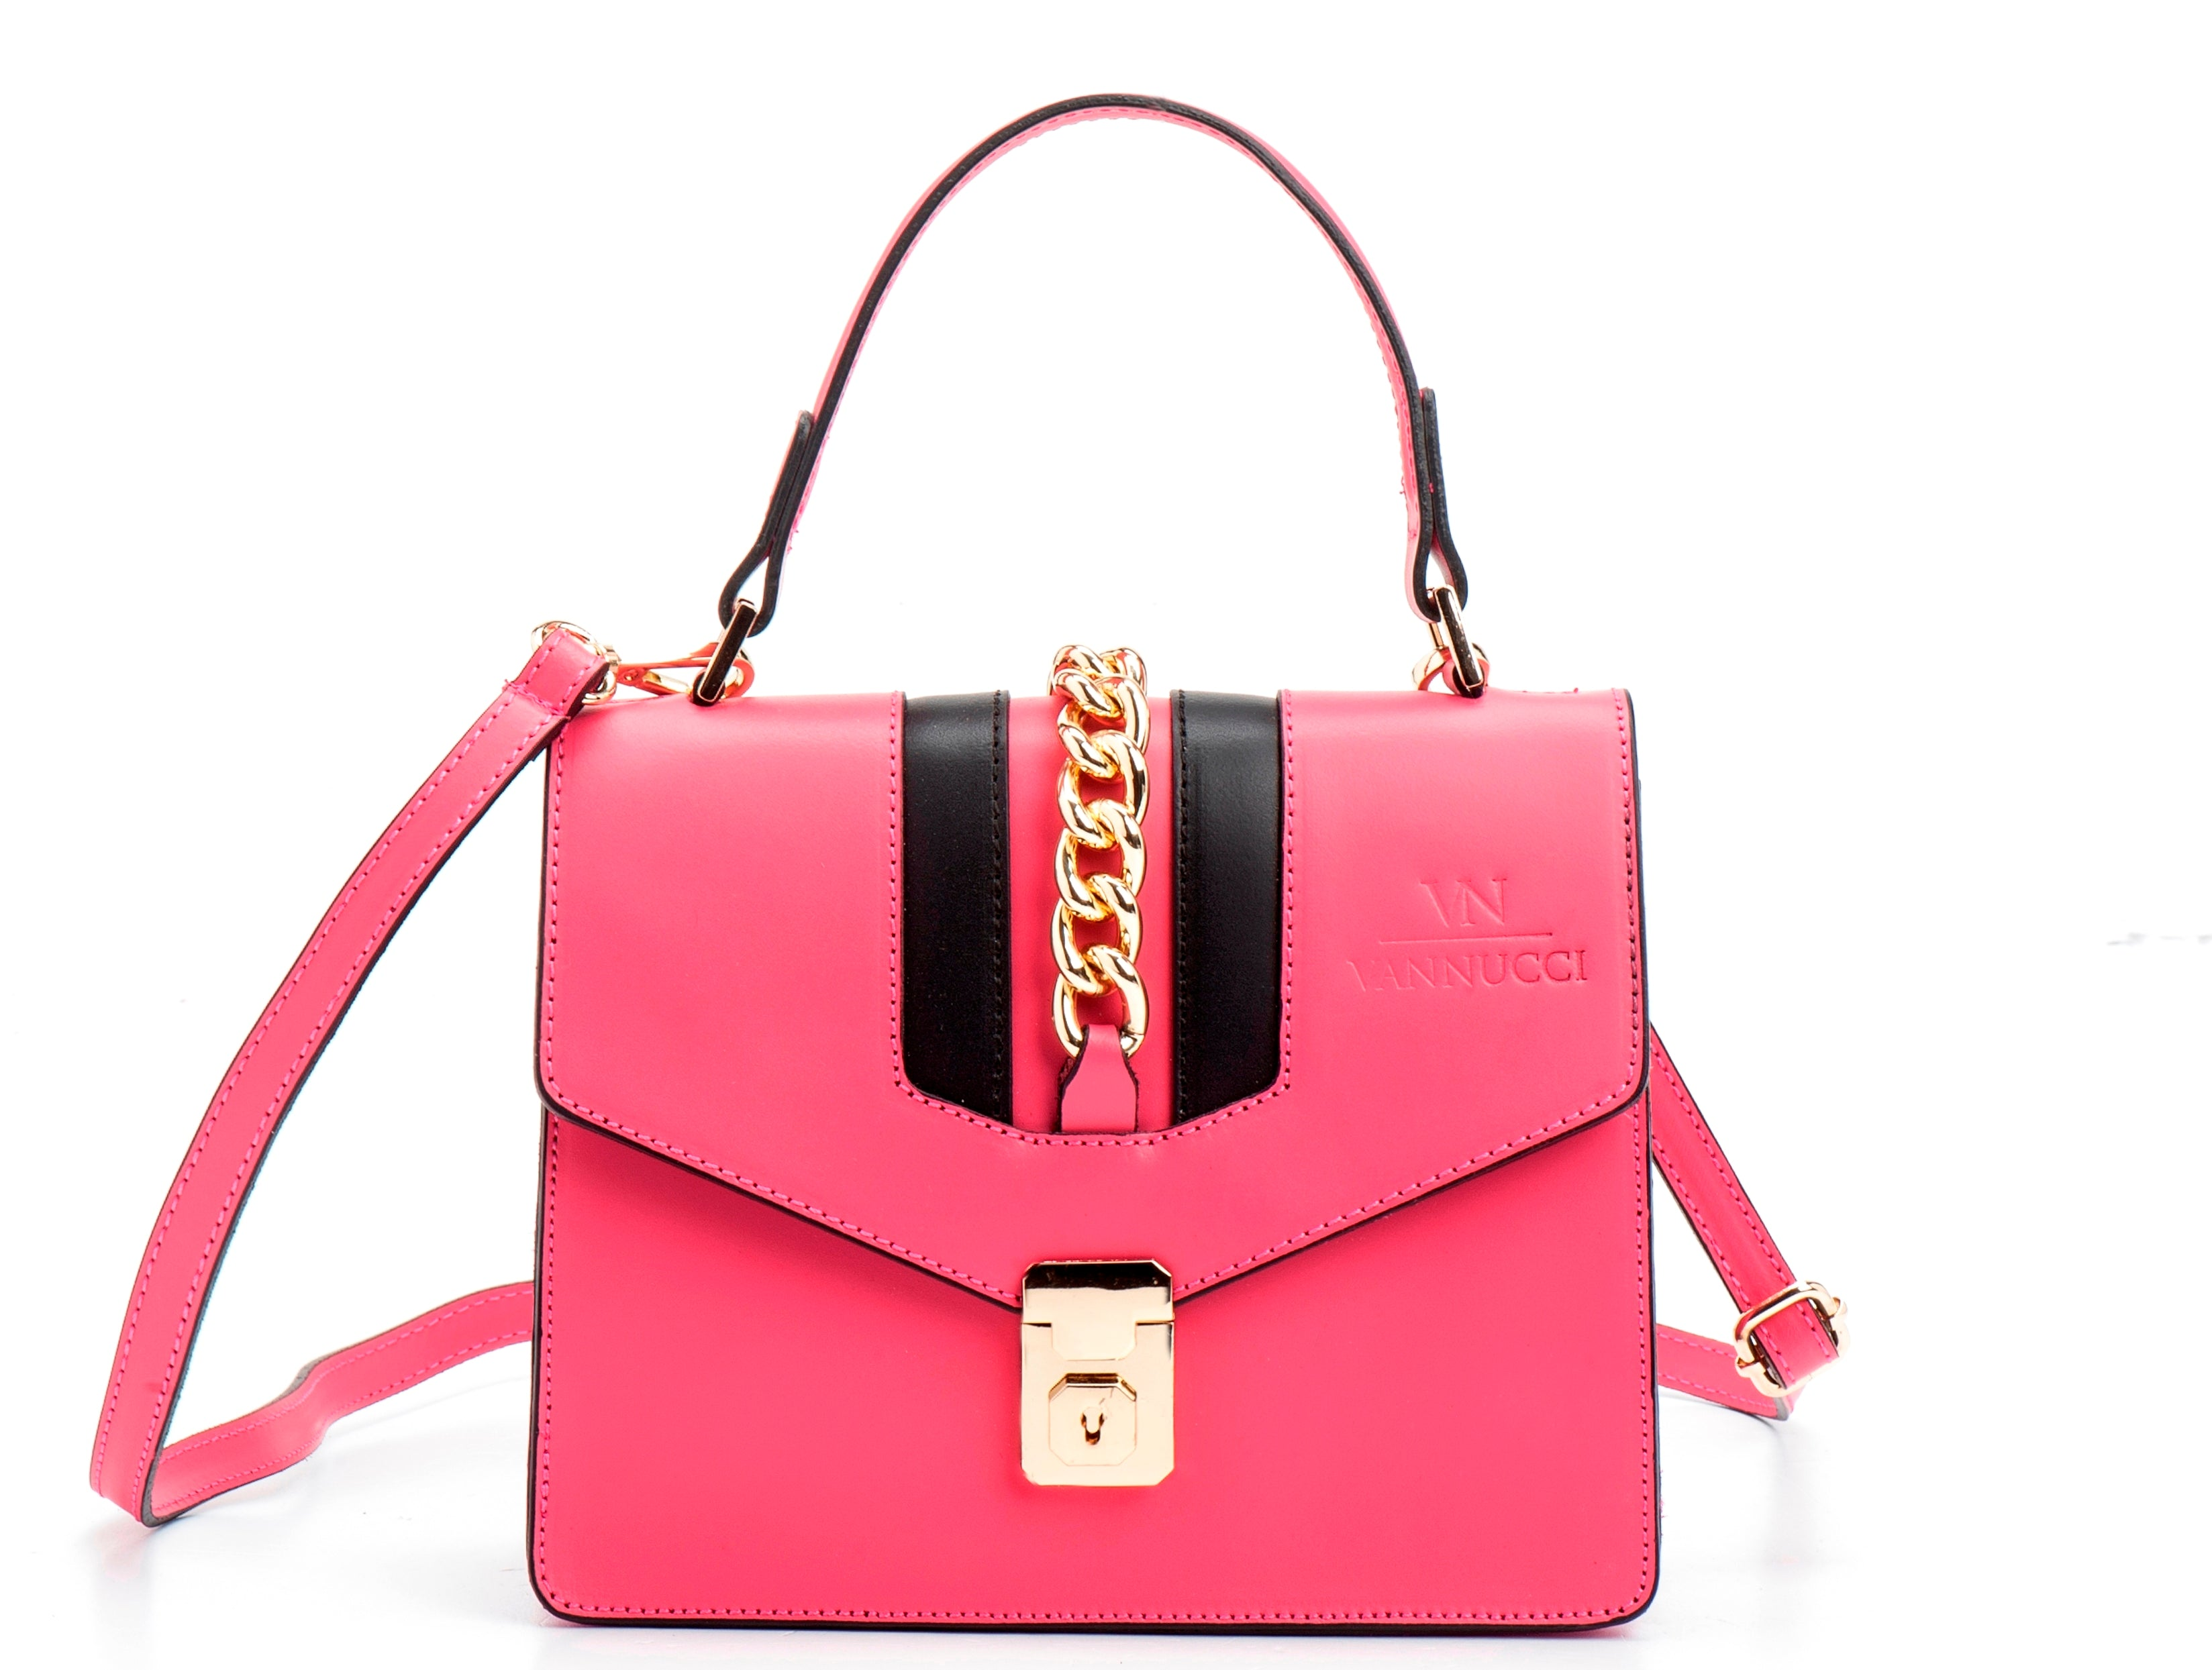 Veronica leather bag pink